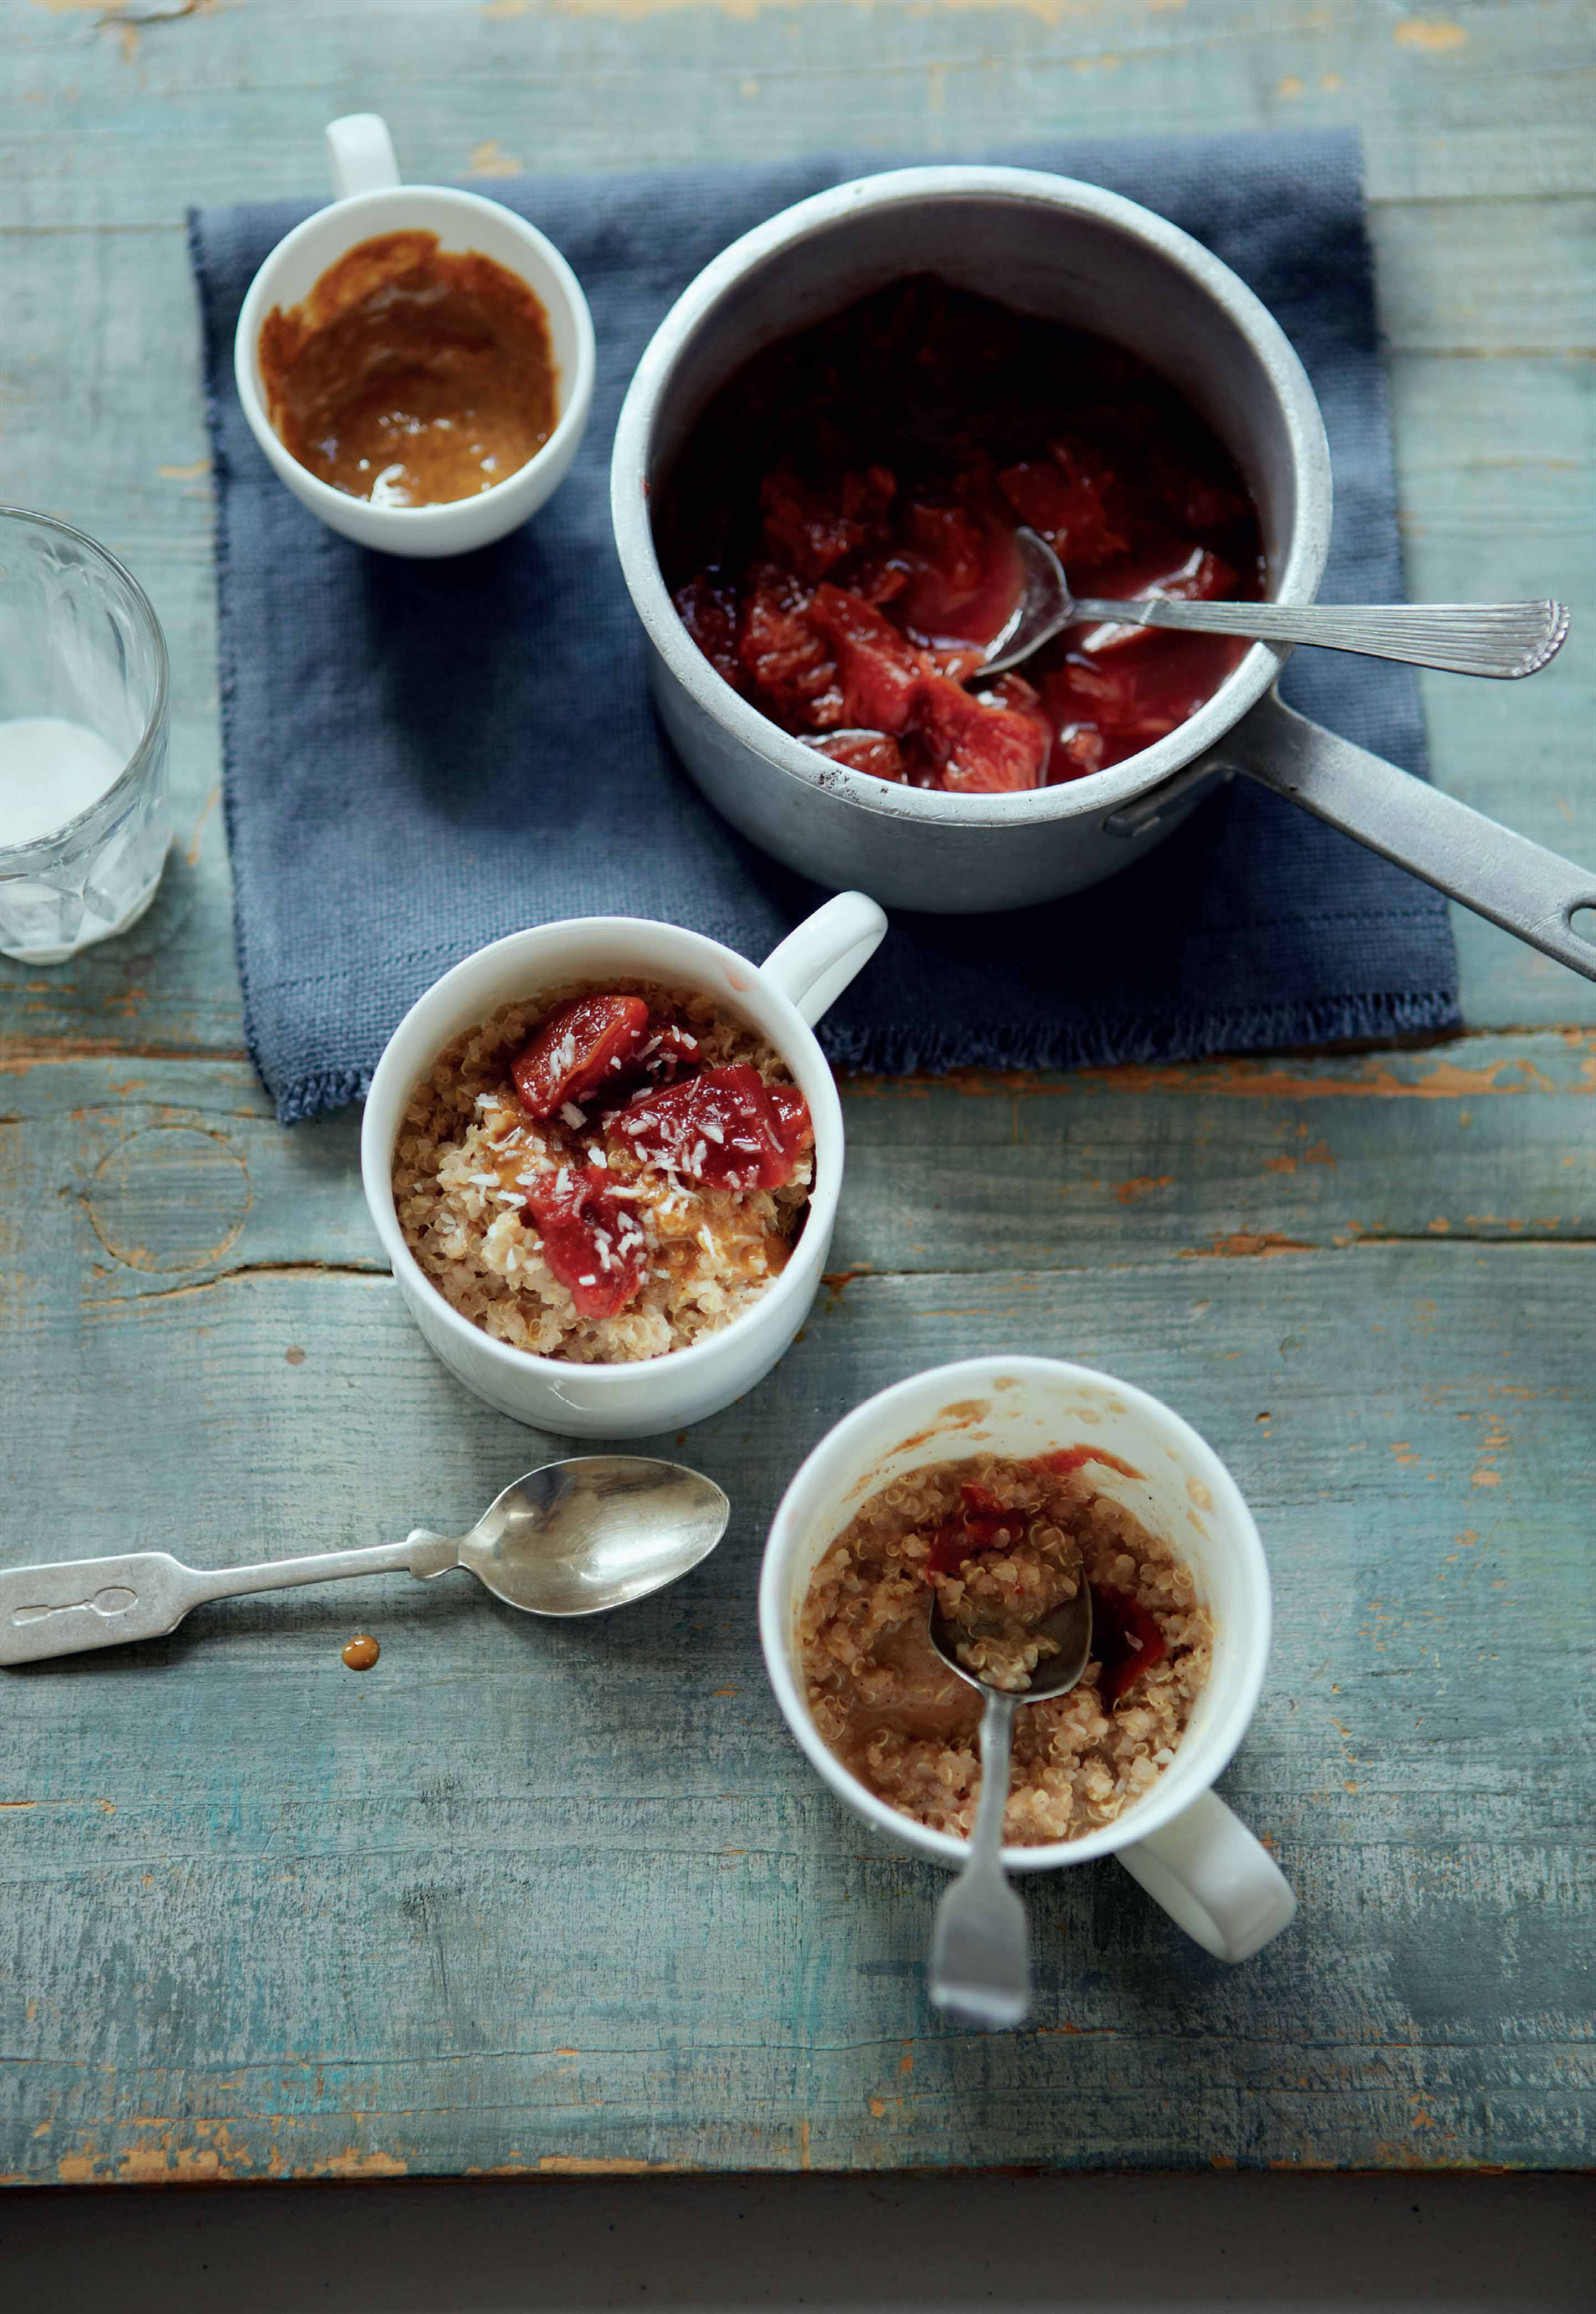 Coconut and Almond Quinoa with Stewed Plums